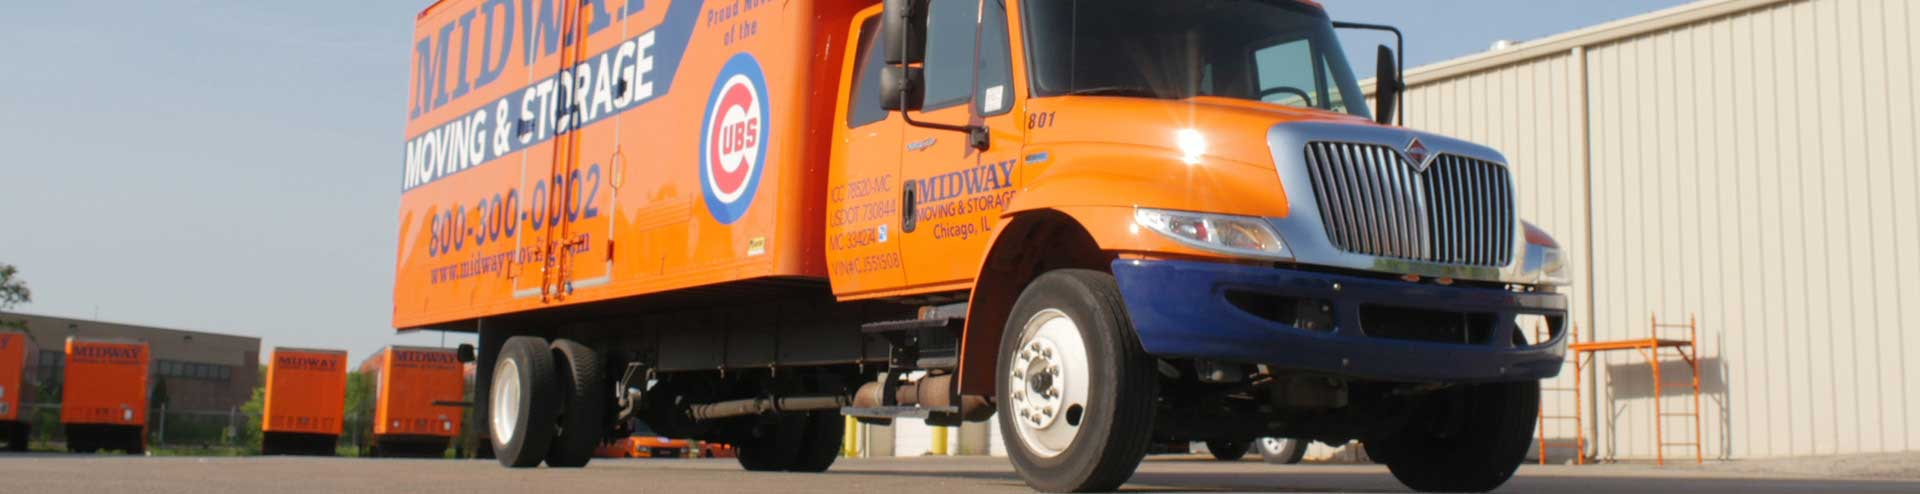 chicago local movers & storage services | midway moving and storage